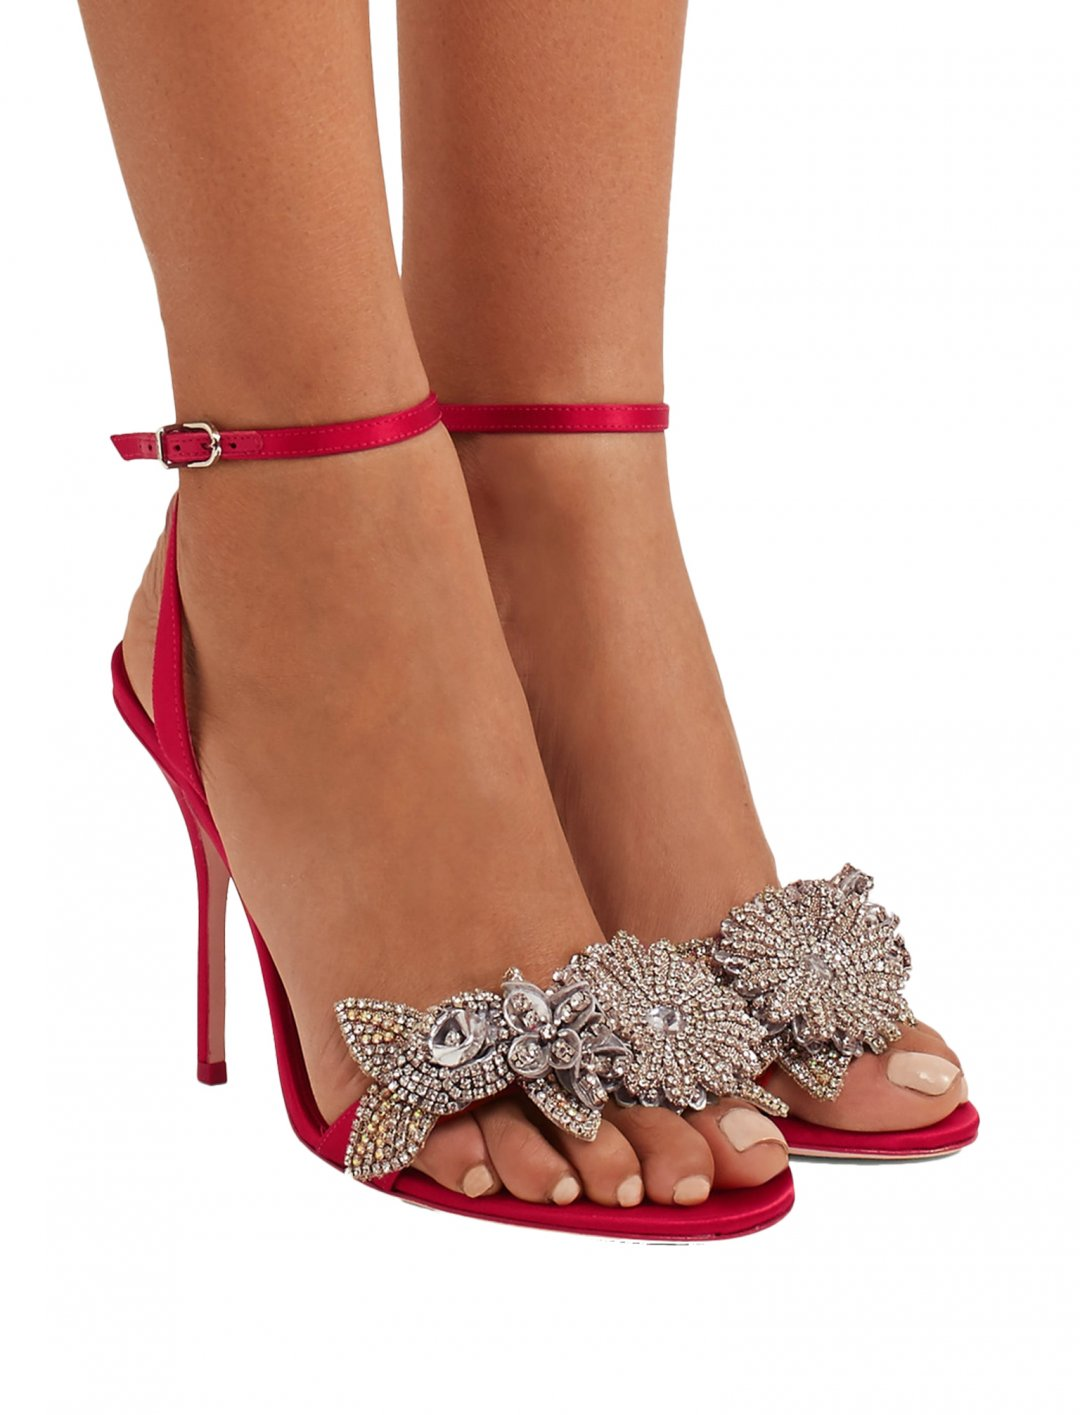 """Tinashe's Satin Sandals {""""id"""":12,""""product_section_id"""":1,""""name"""":""""Shoes"""",""""order"""":12} Sophie Webster"""